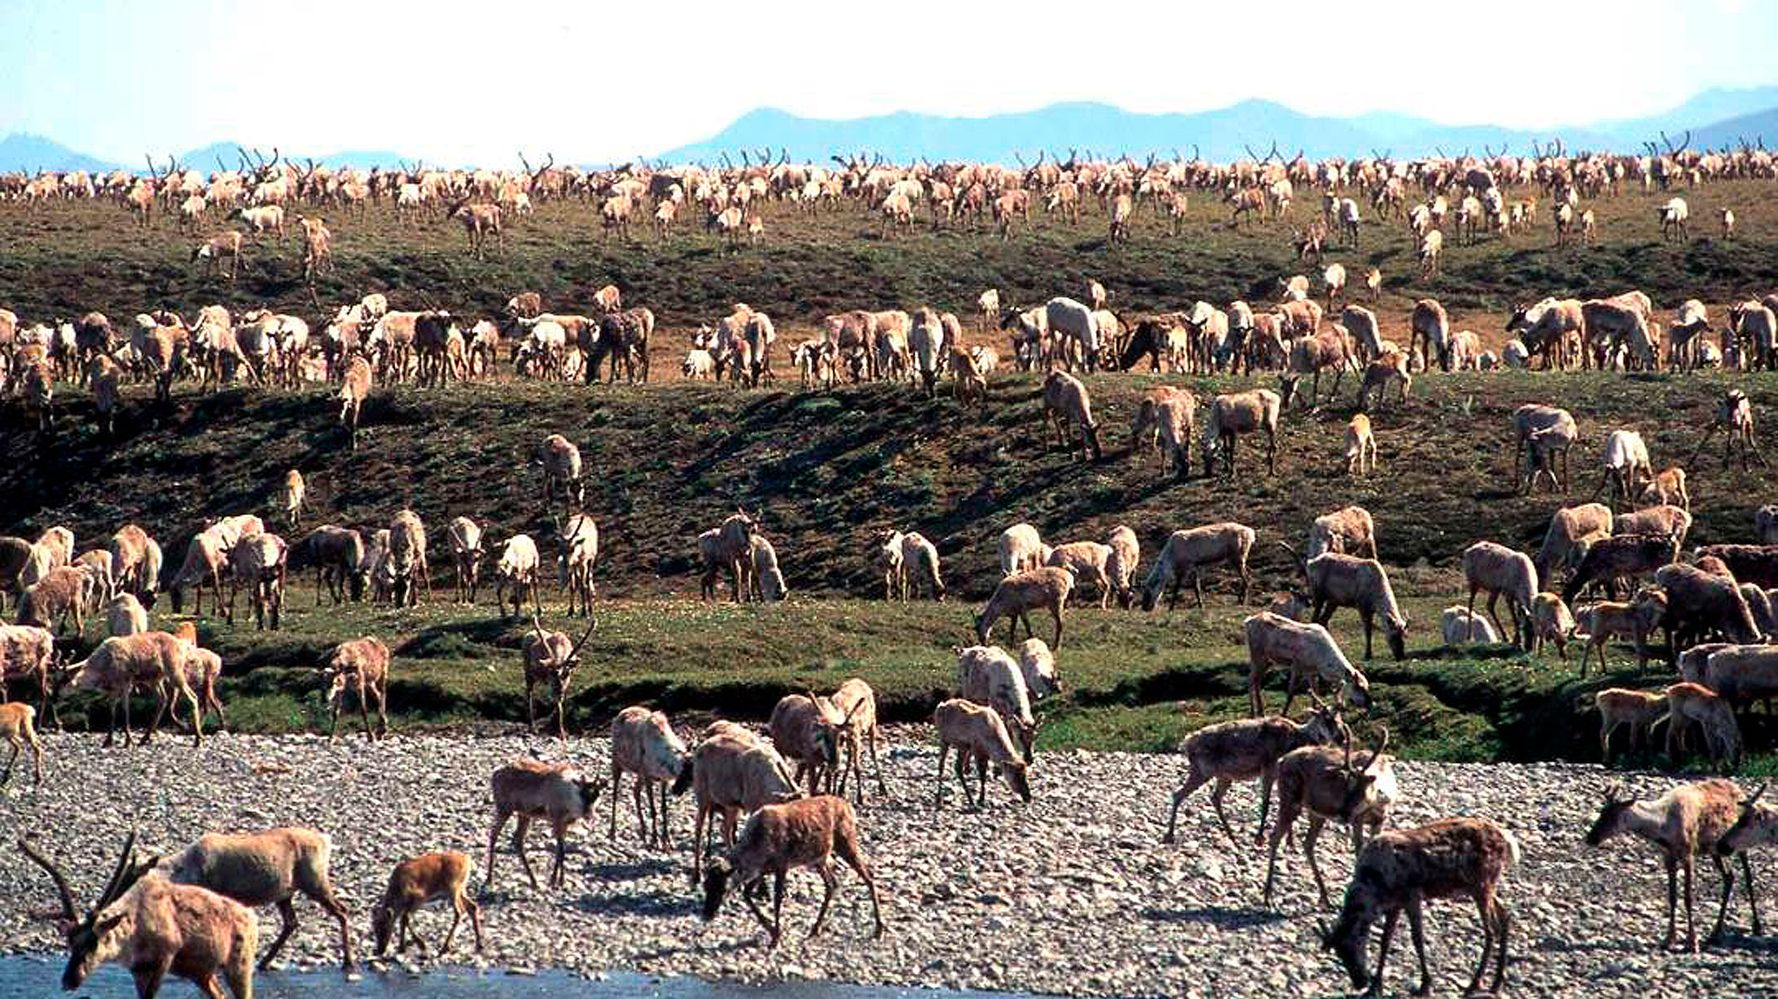 Trump To Sell Arctic Refuge Oil Leases 2 Weeks Before Biden Inauguration